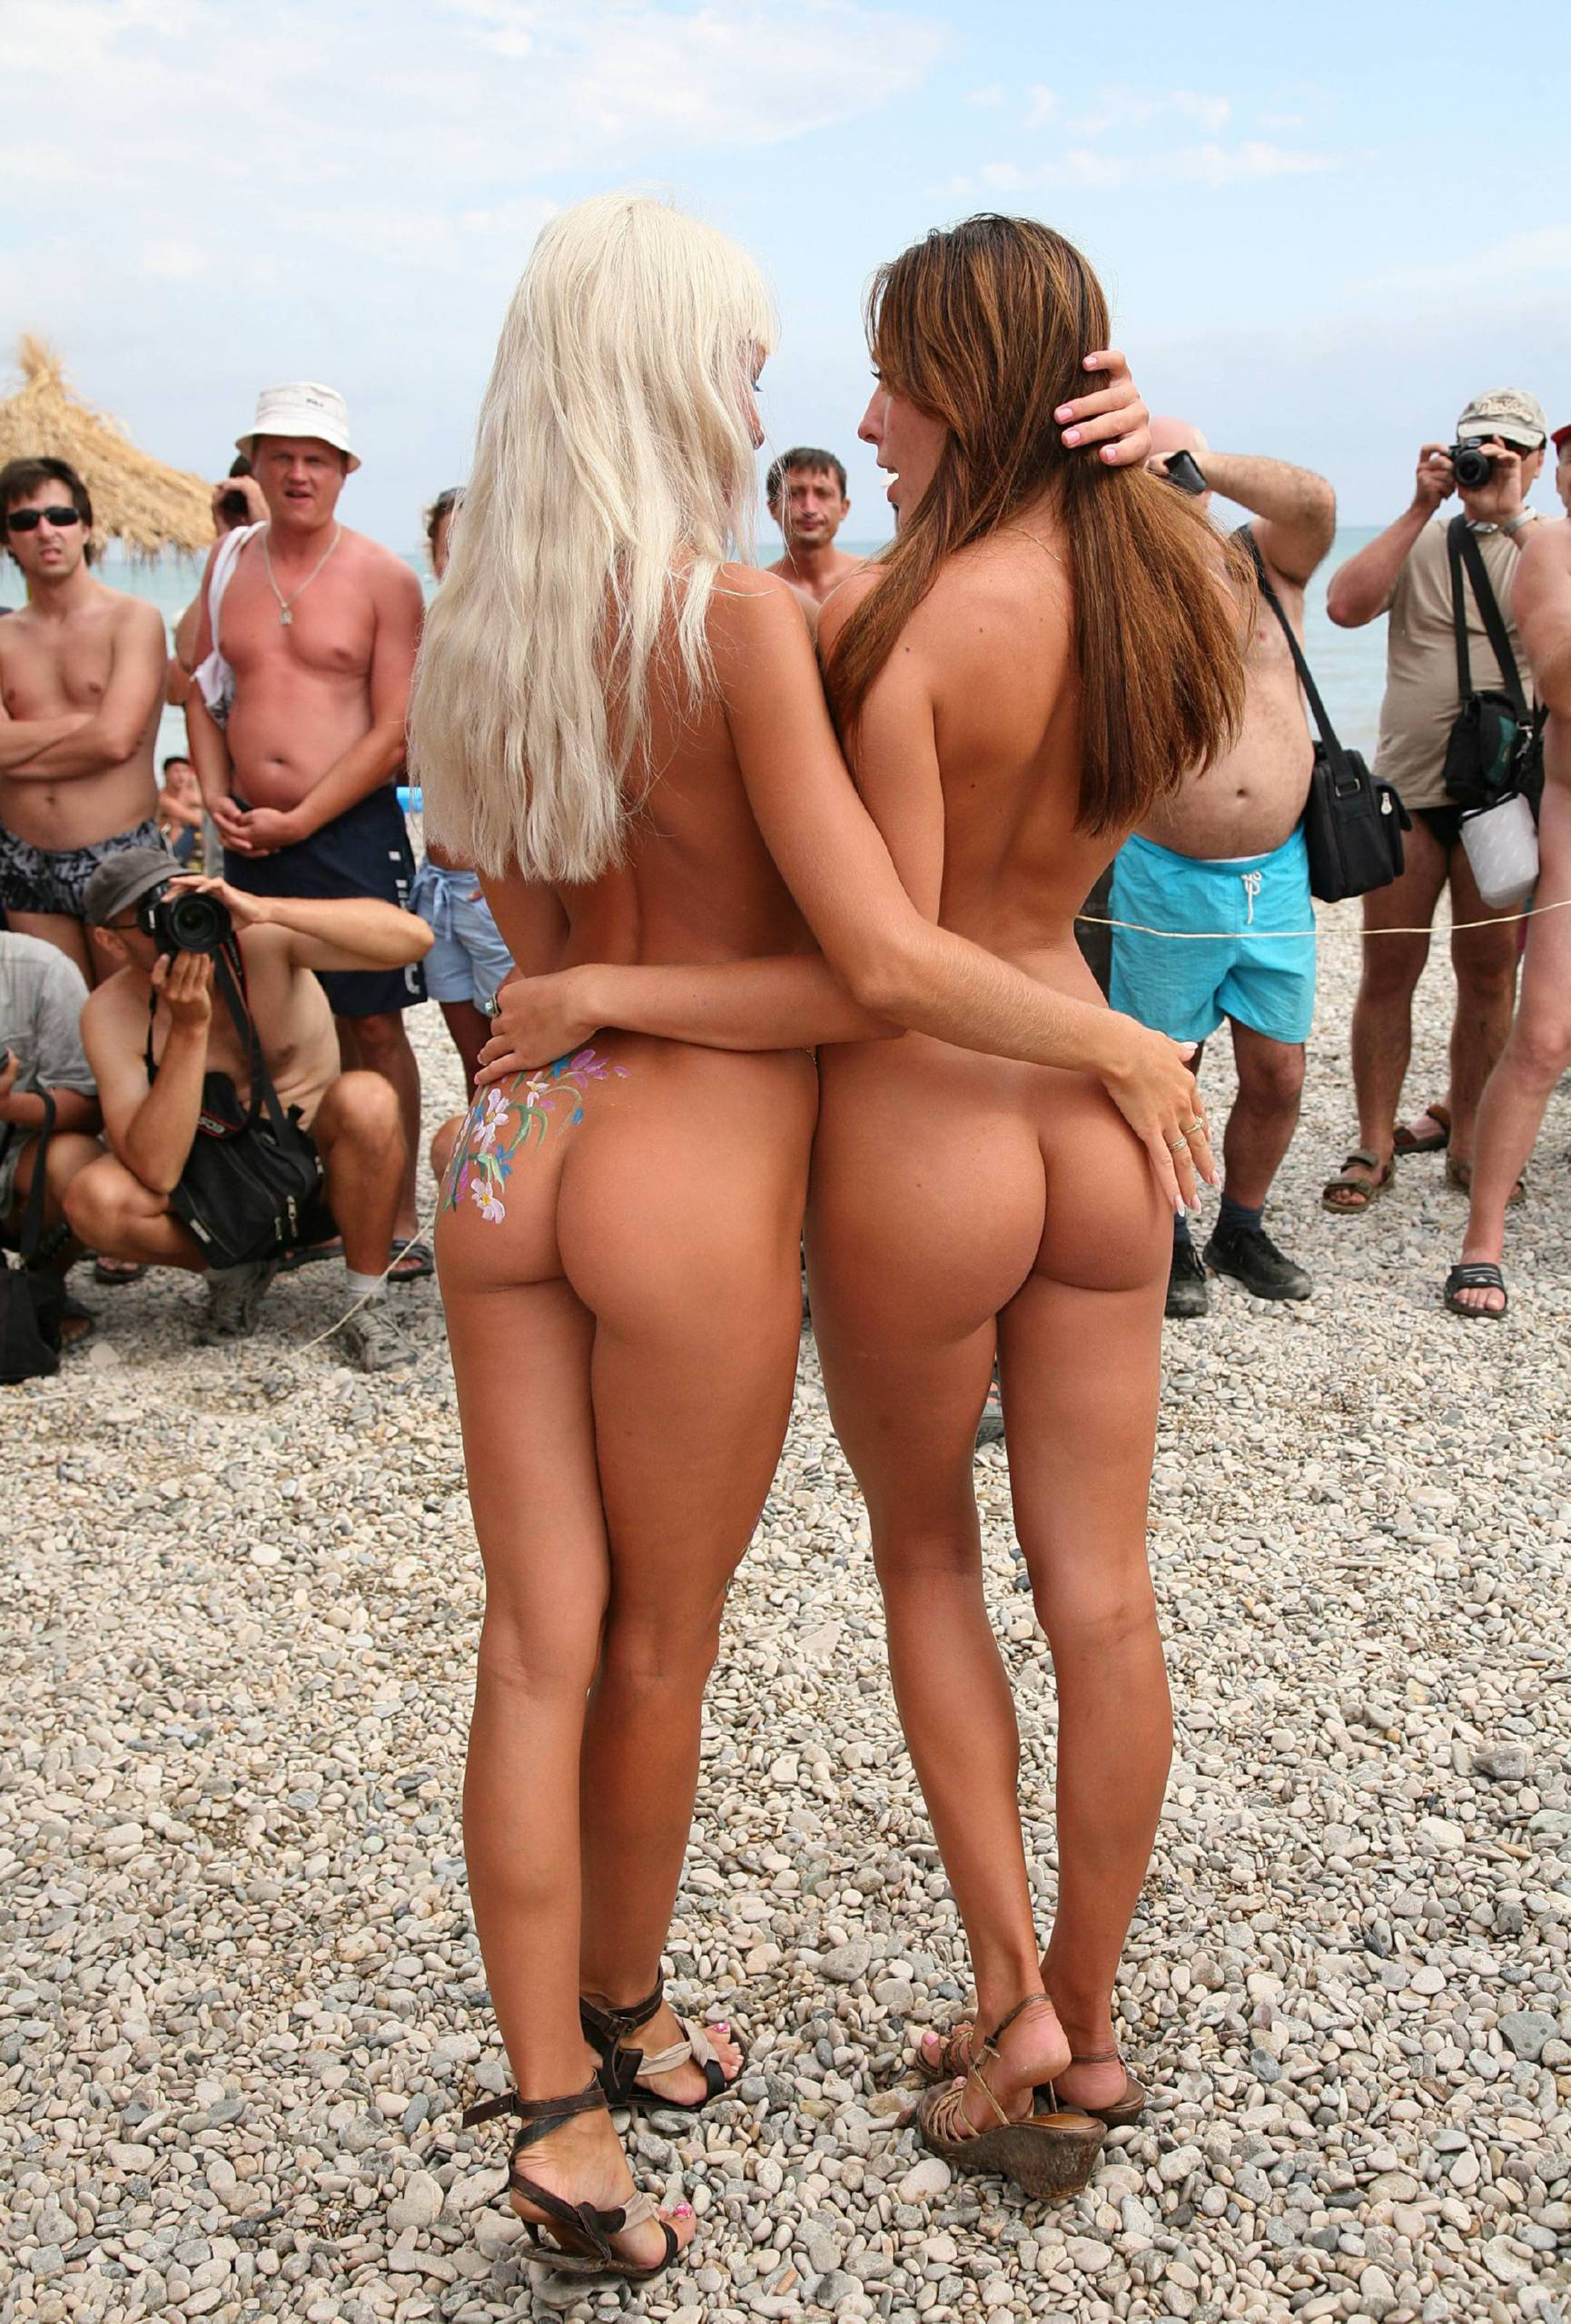 Nudist Gallery Healthy Outside Daytime - 2